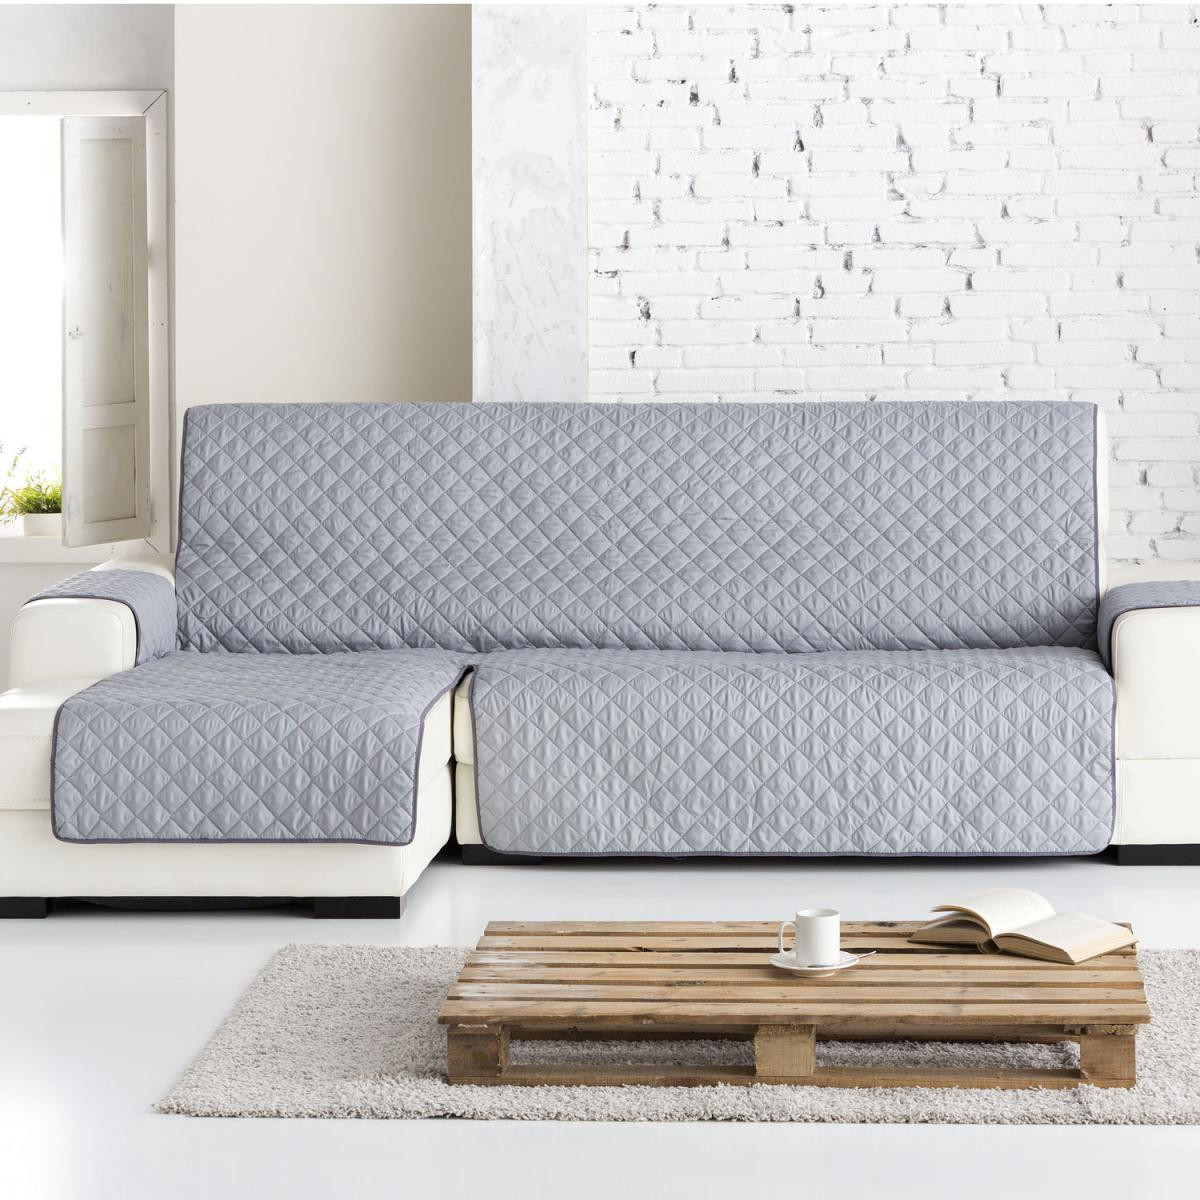 Fundas De sofa Chaise Longue atractivo Funda De sofa Chaise Longe Dual Quilt Of 42  Brillante Fundas De sofa Chaise Longue